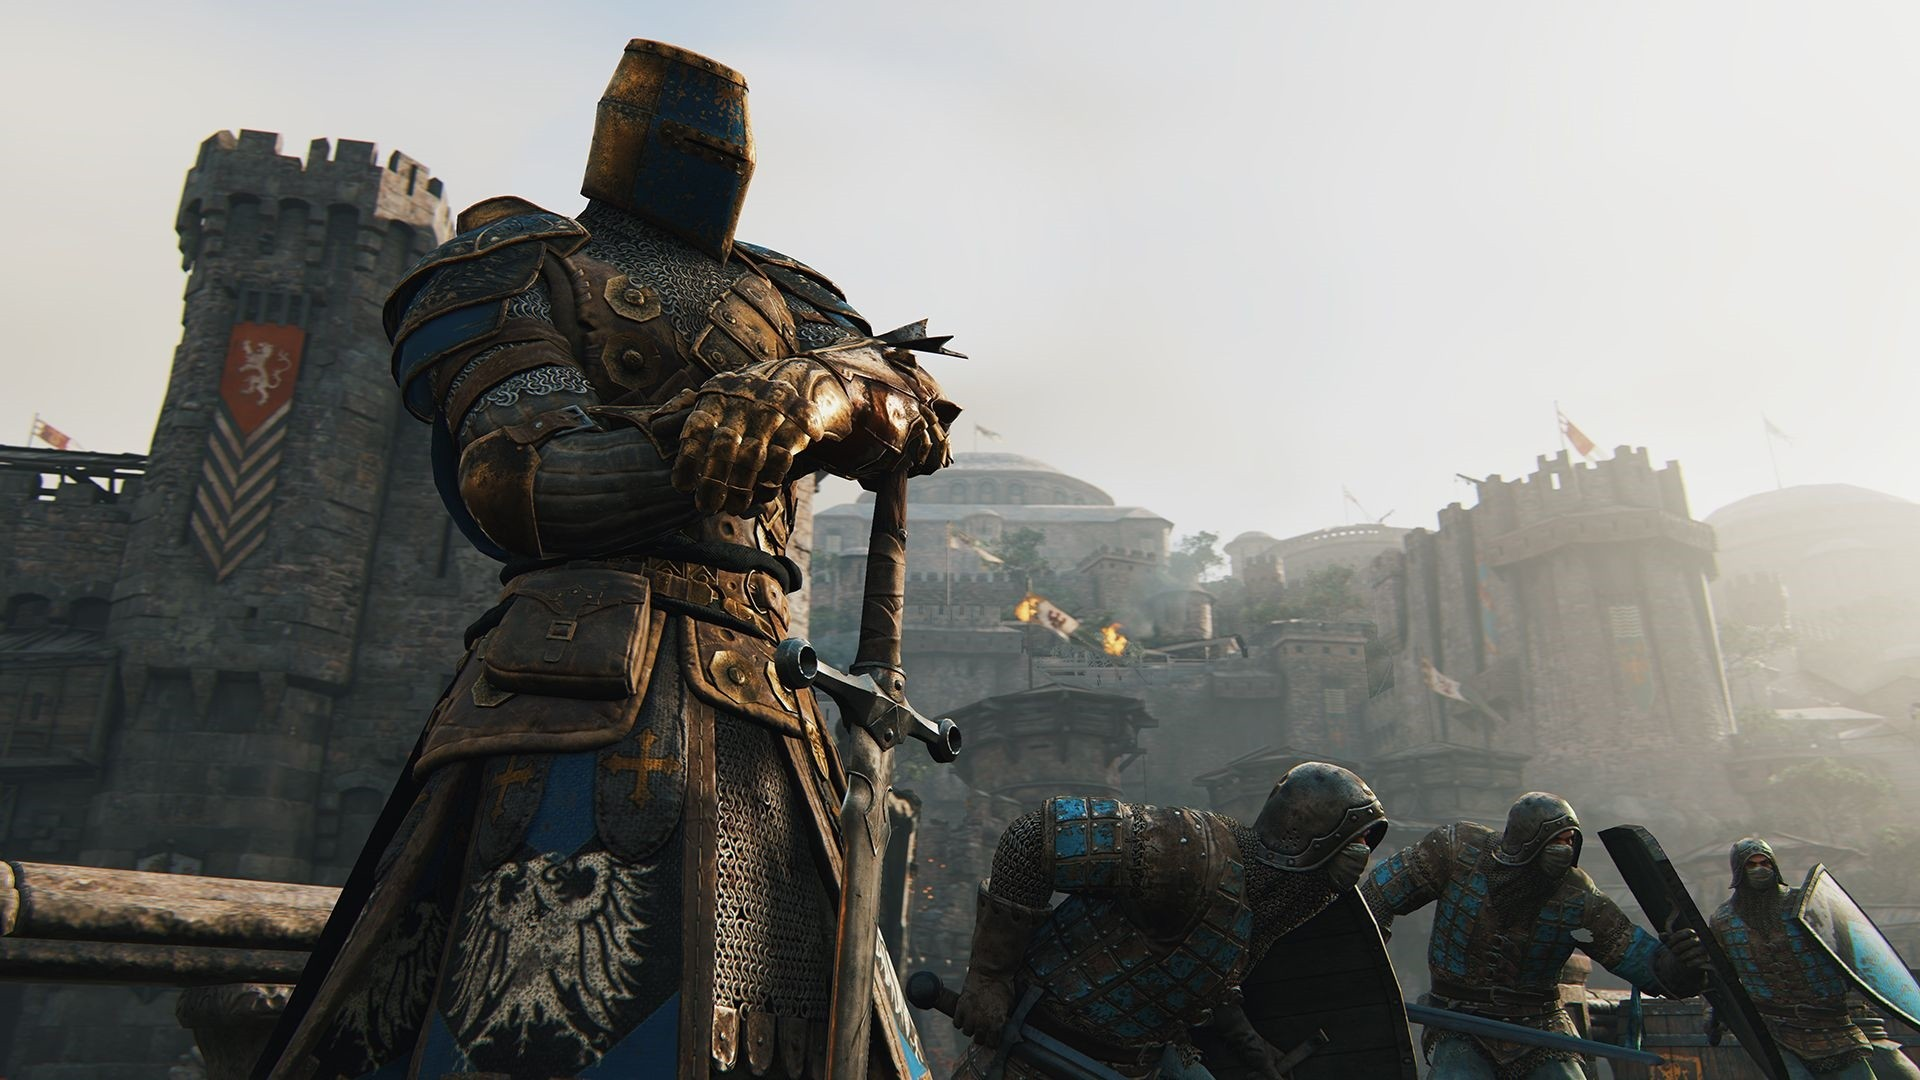 For Honor hd wallpaper download